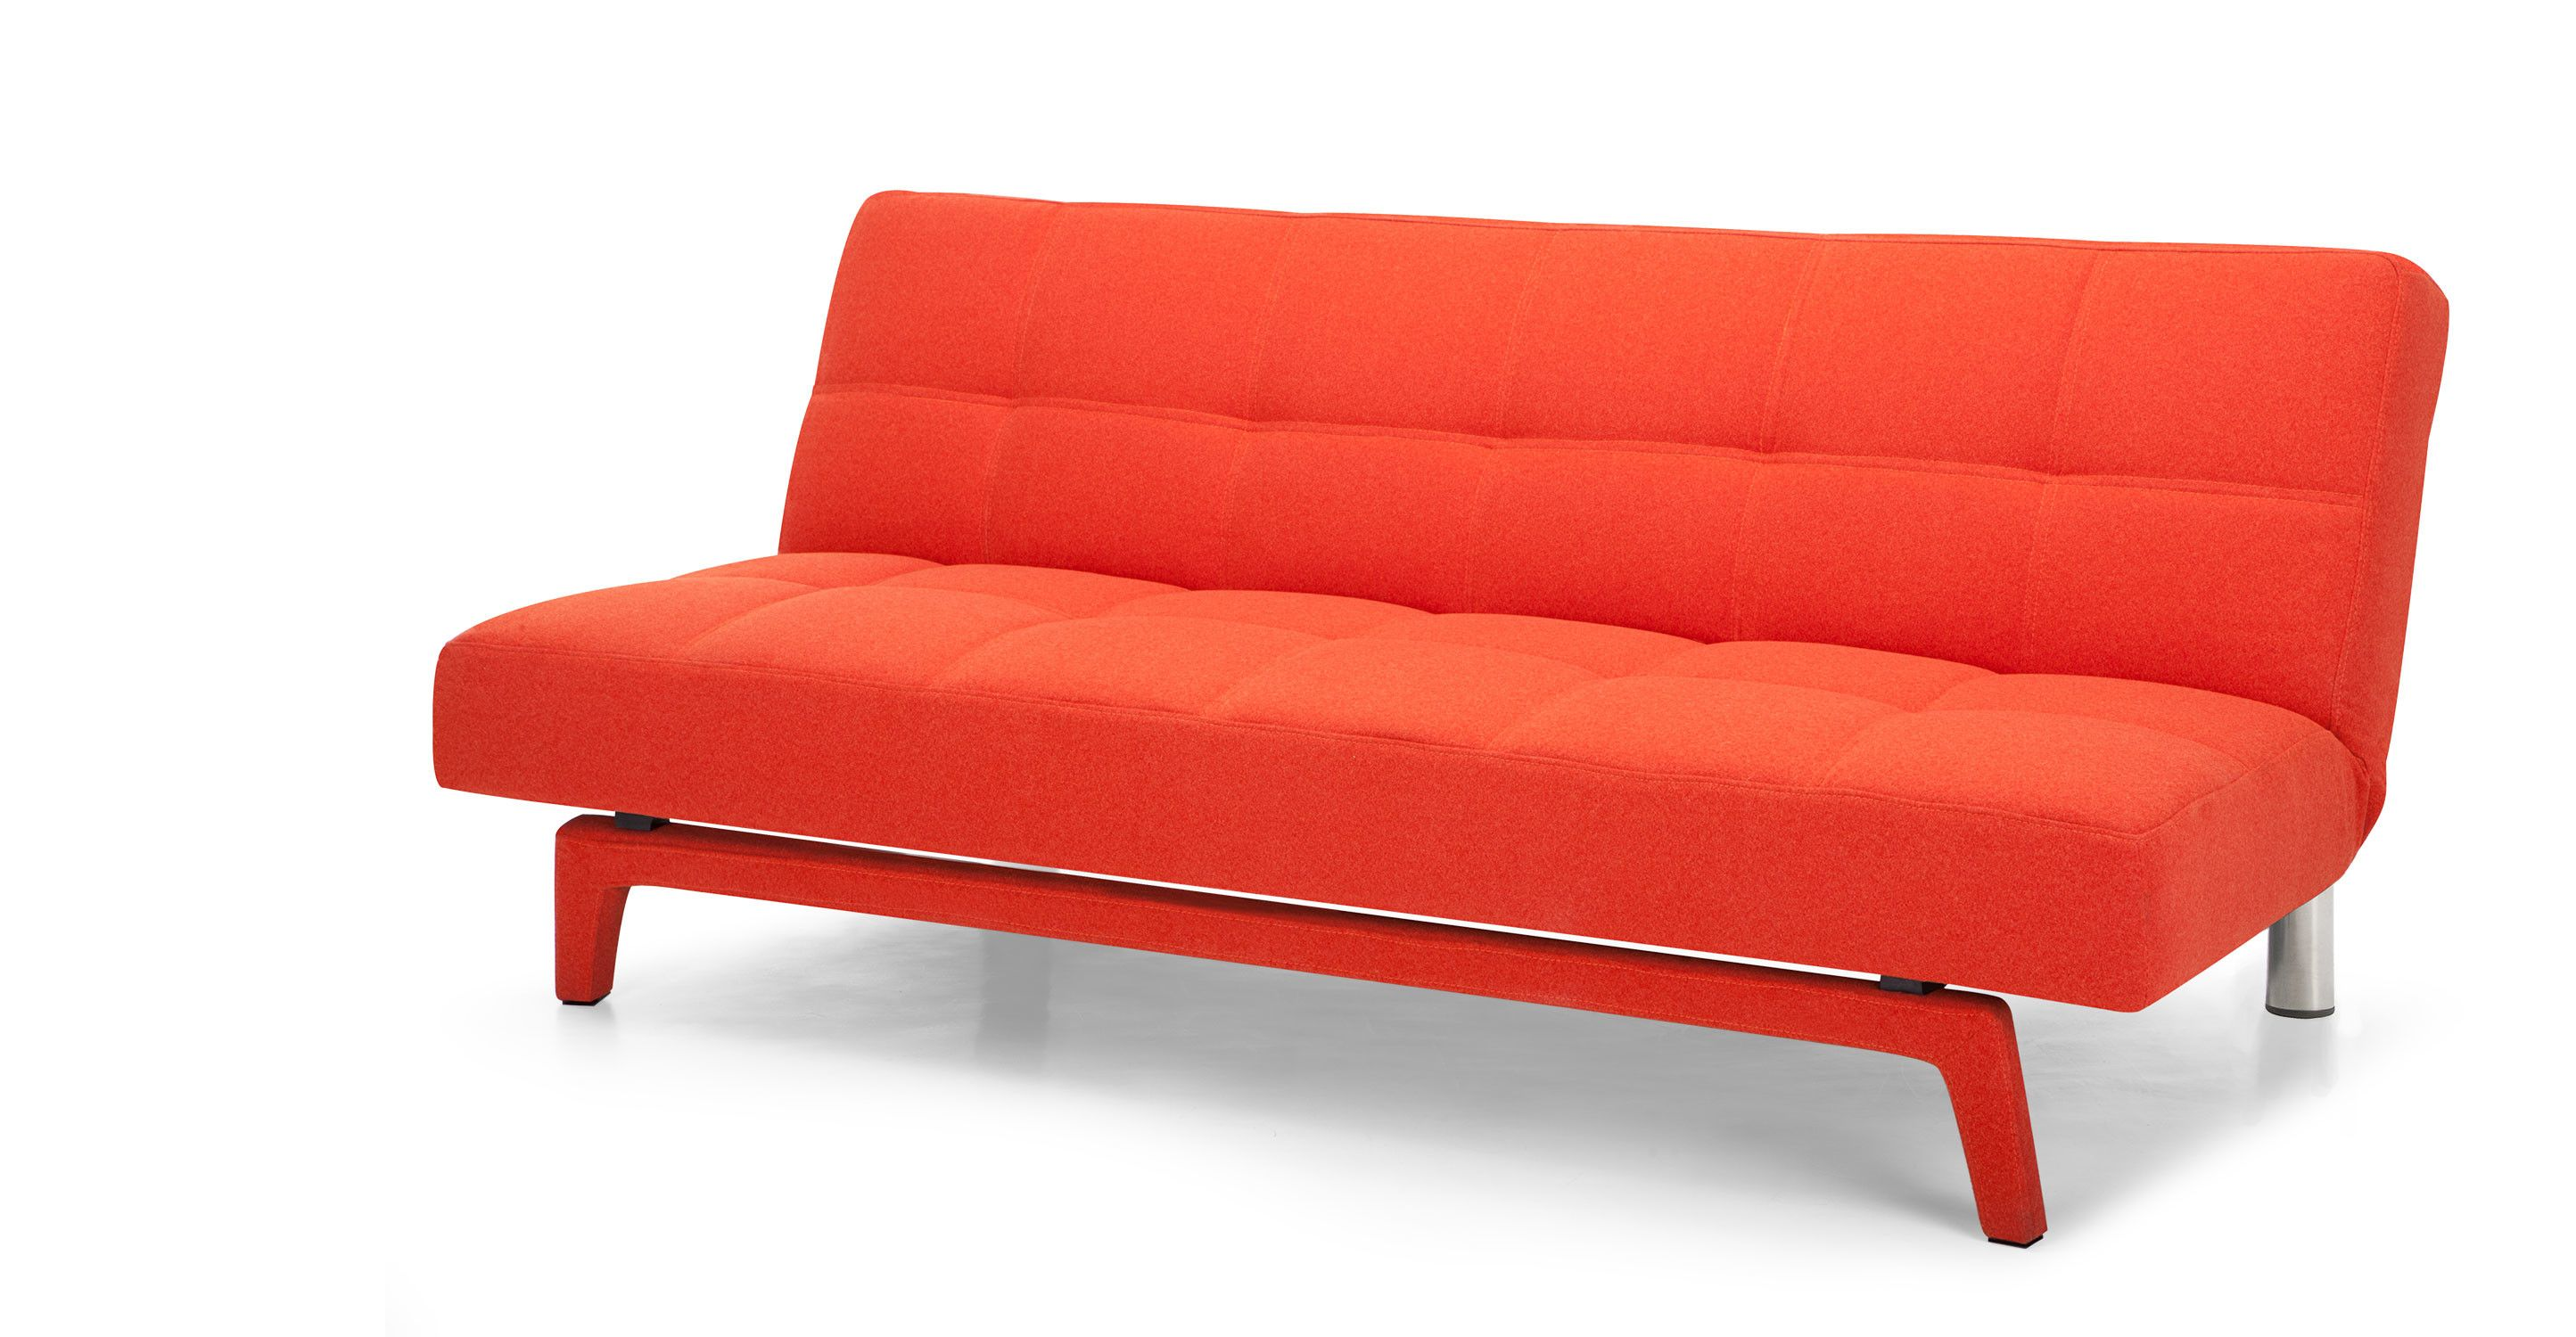 Sofa Bed Express Delivery Yoko Sofa Bed Saffron Orange From Made Express Delivery A